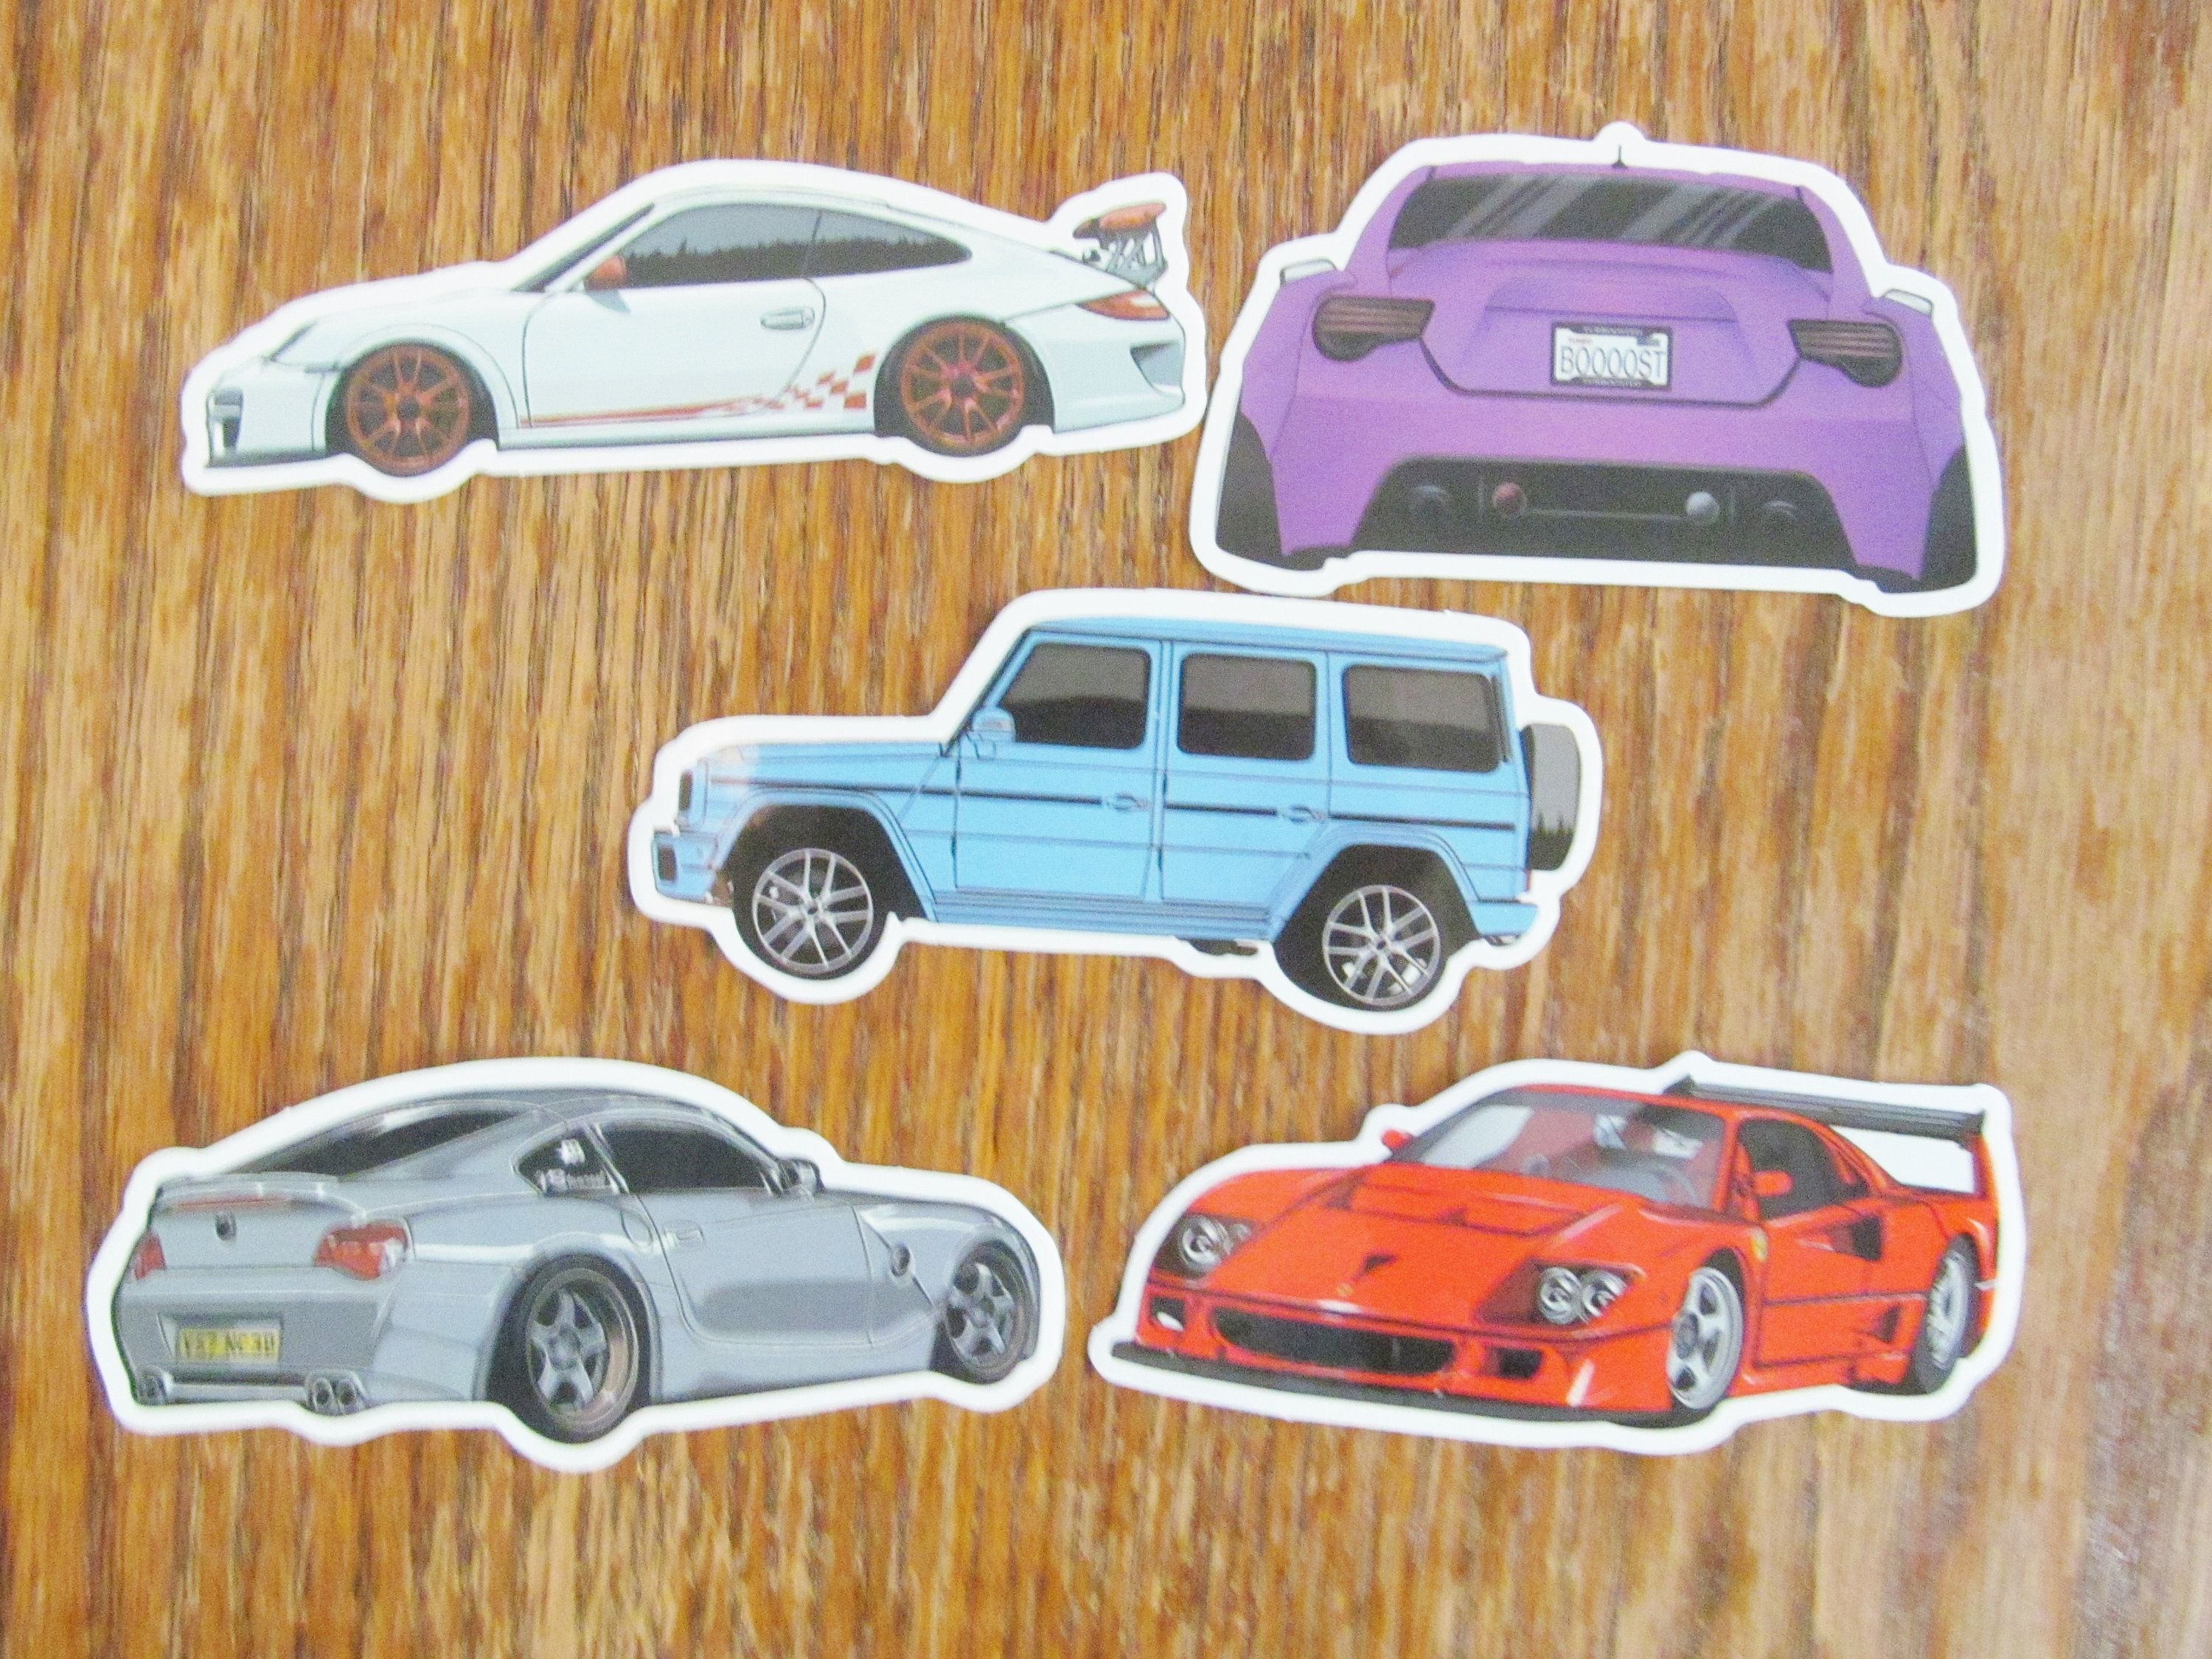 Sale Car Sticker Bundle Great For Your Laptop Hydroflask Cell Phone Etc Fast Free Shipping By Cellardeals On Ets In 2021 Vinyl Car Stickers Car Stickers Car [ 2250 x 3000 Pixel ]